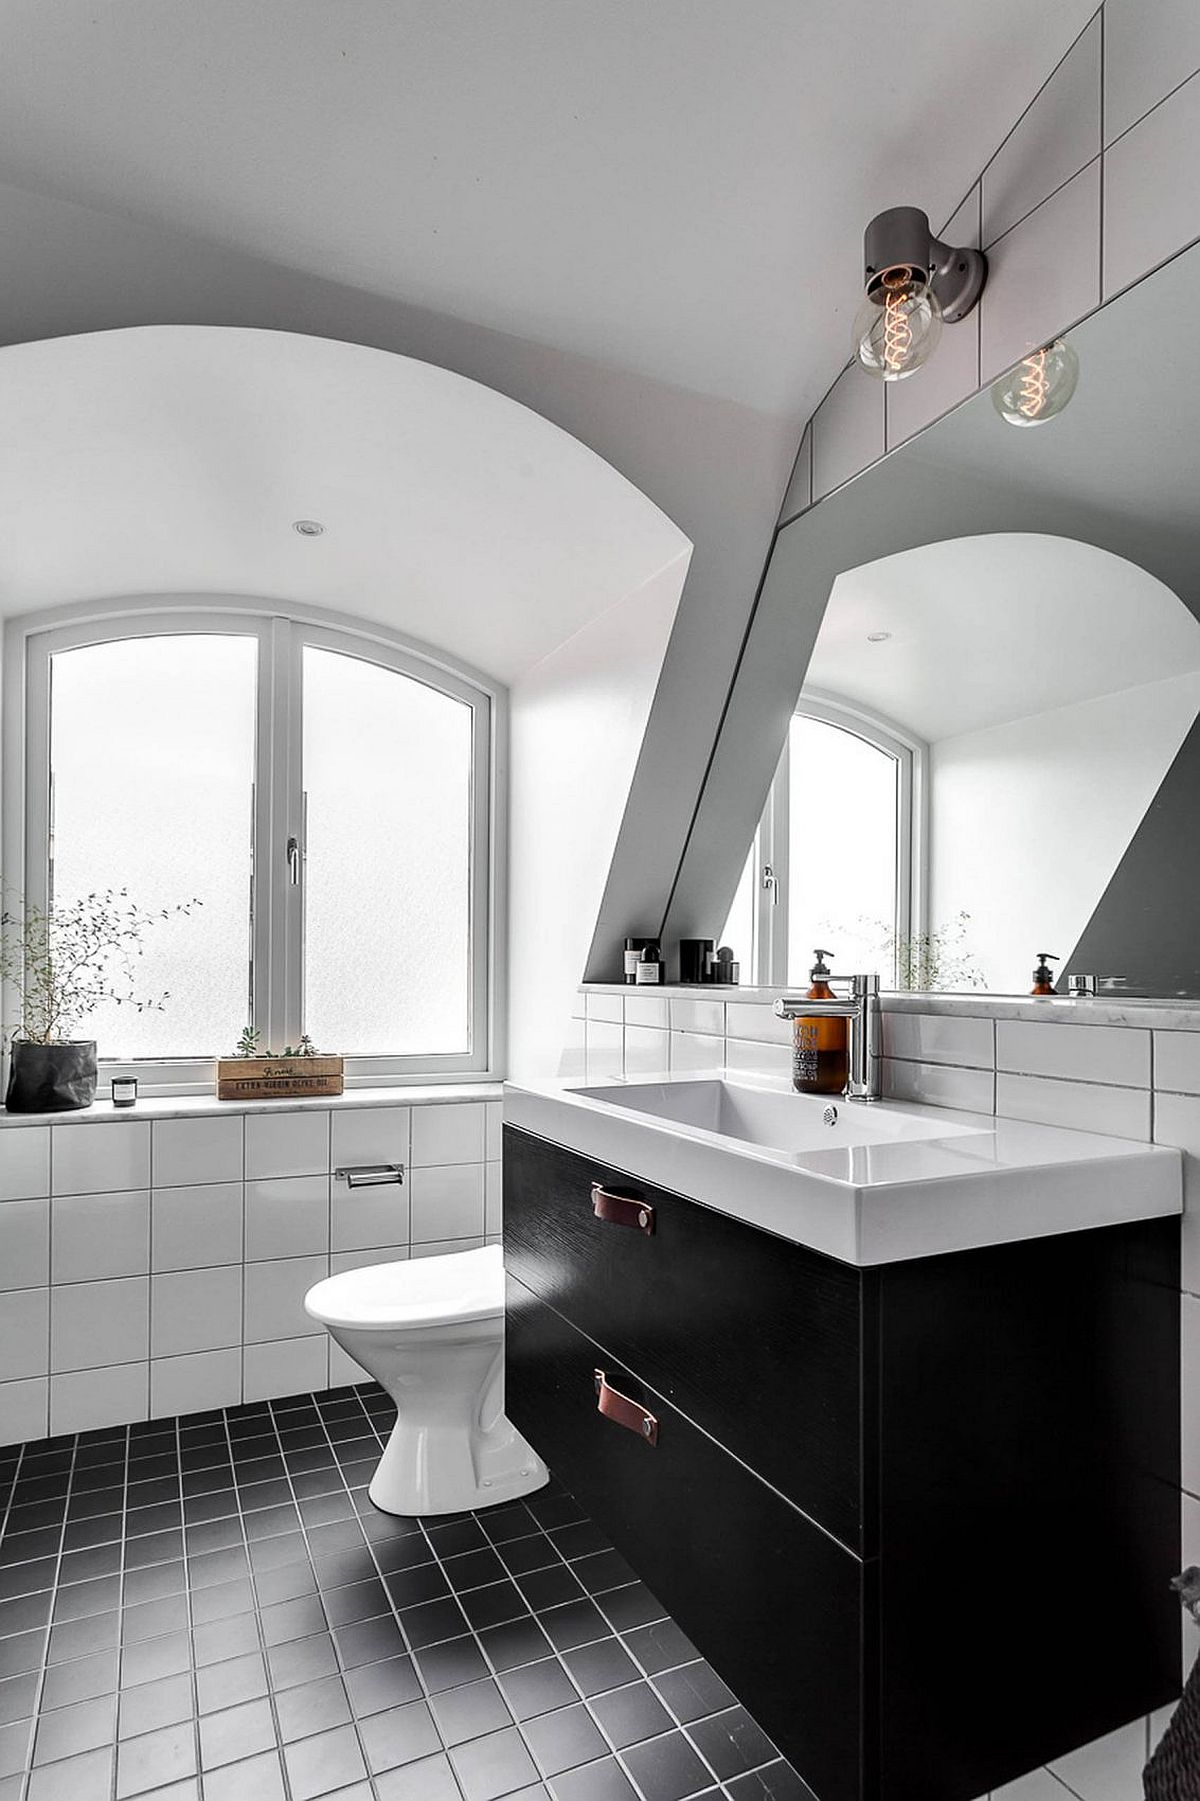 Black and white Scandinavian style bathroom filled with natural light